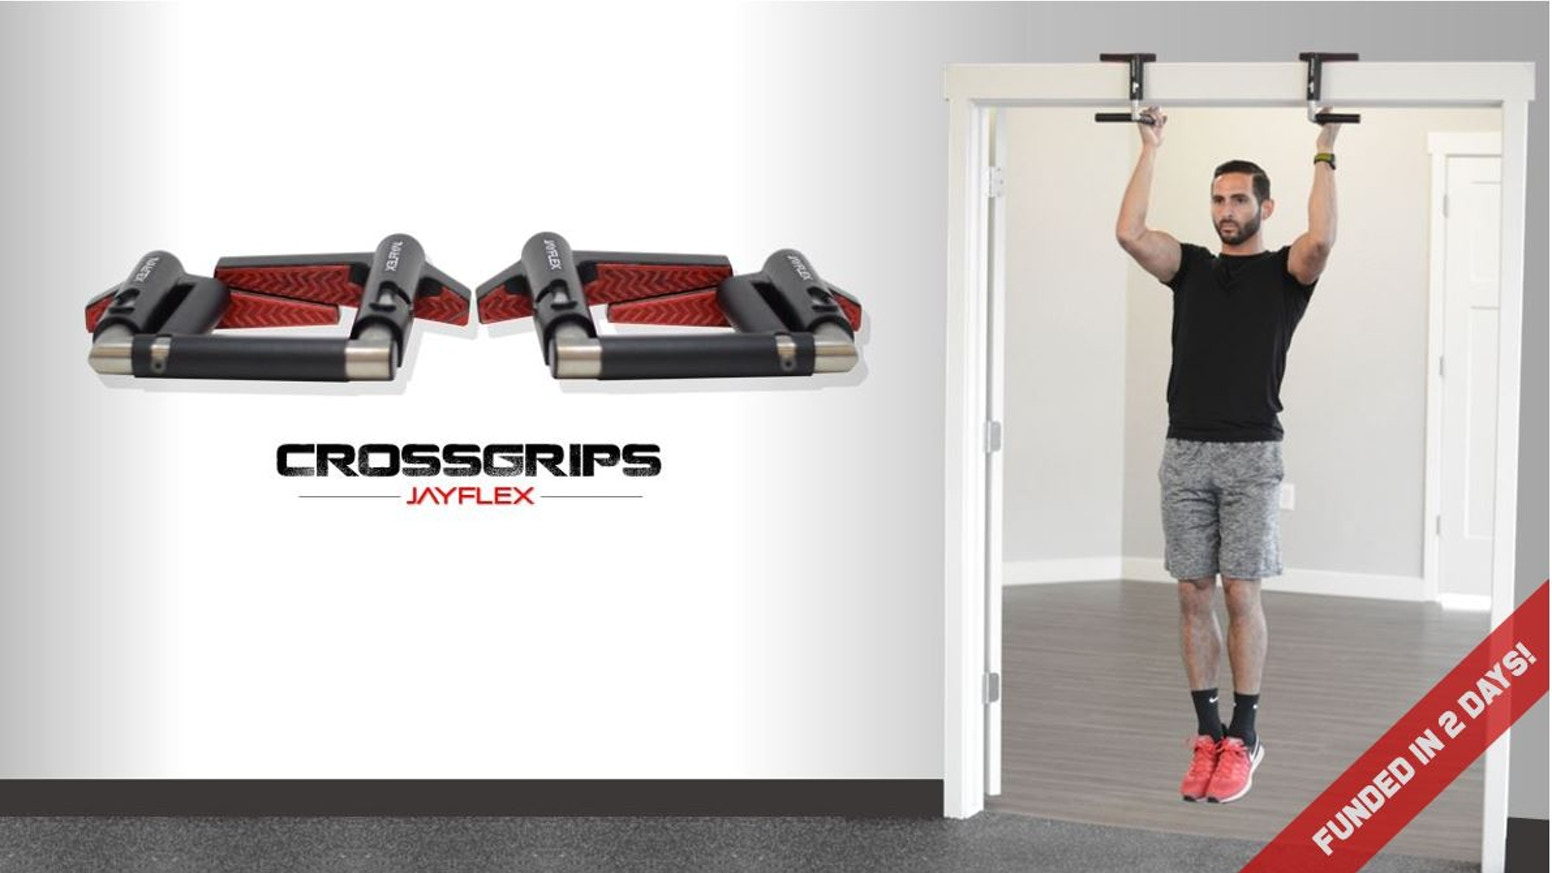 """CrossGrips by Jayflex are the """"Swiss Army Knife"""" of exercise equipment. A compact multi-gym built for home and travel."""